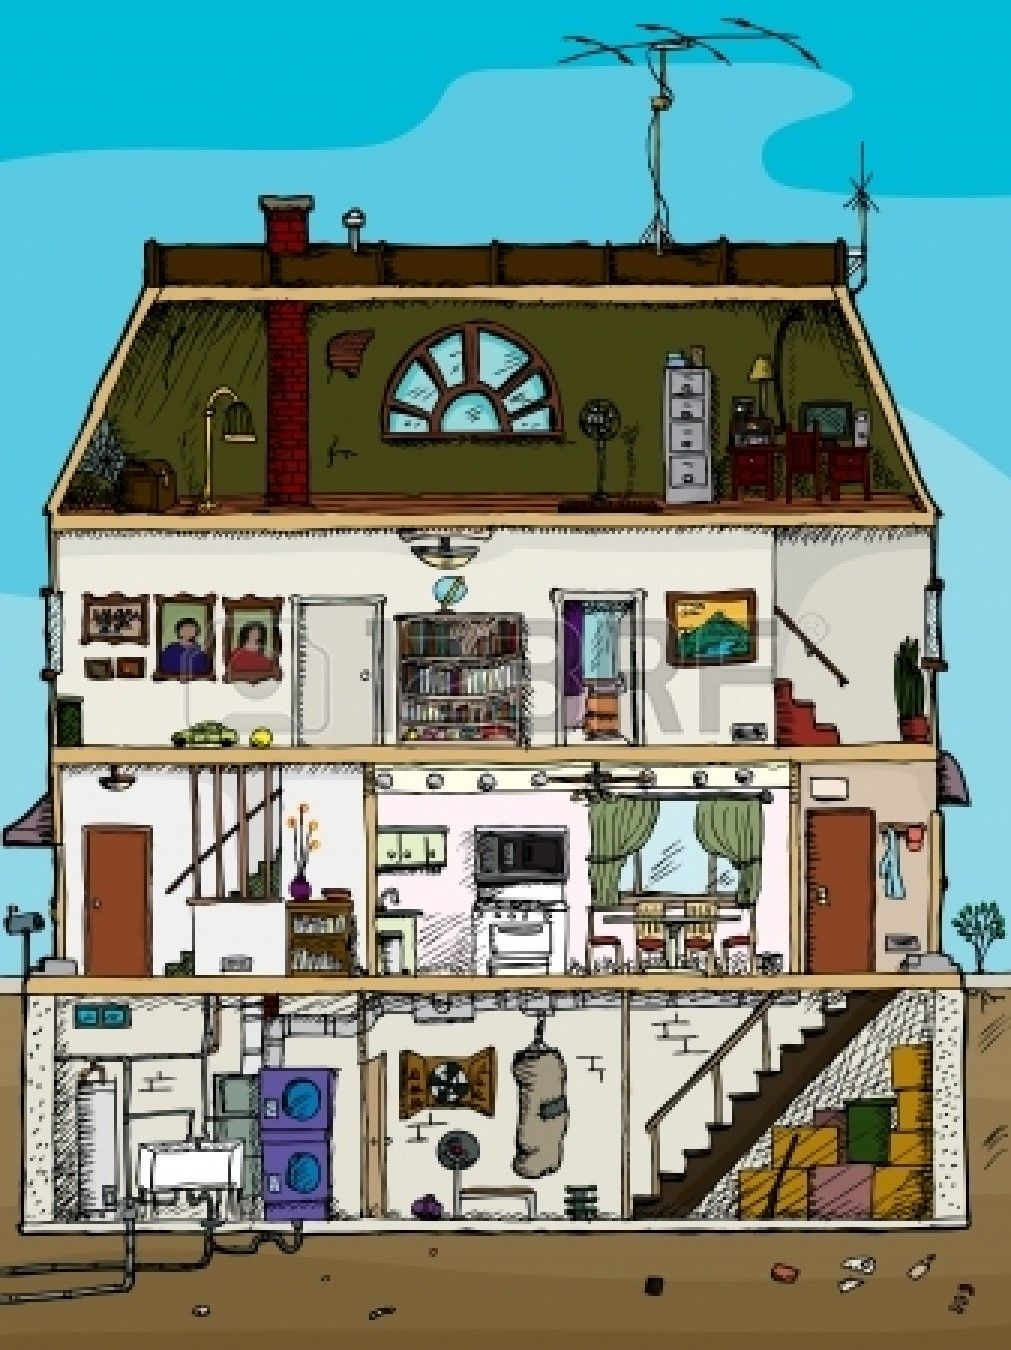 3 Story Old House Cartoon Cross Section With Basement Attic House Attic Remodel Attic Design